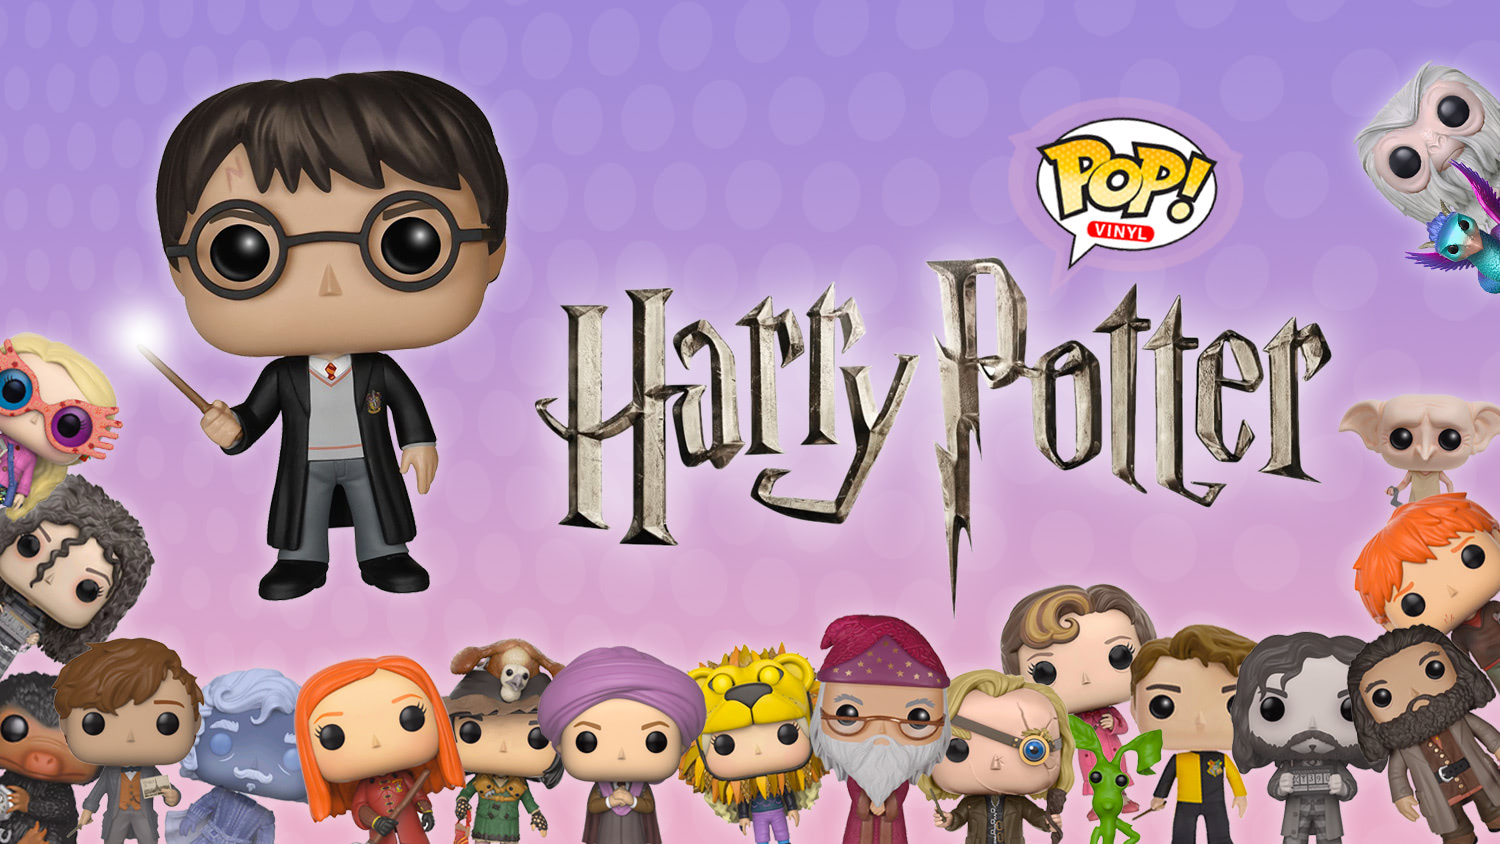 HPFZ launches harrypotterpopvinyls.com